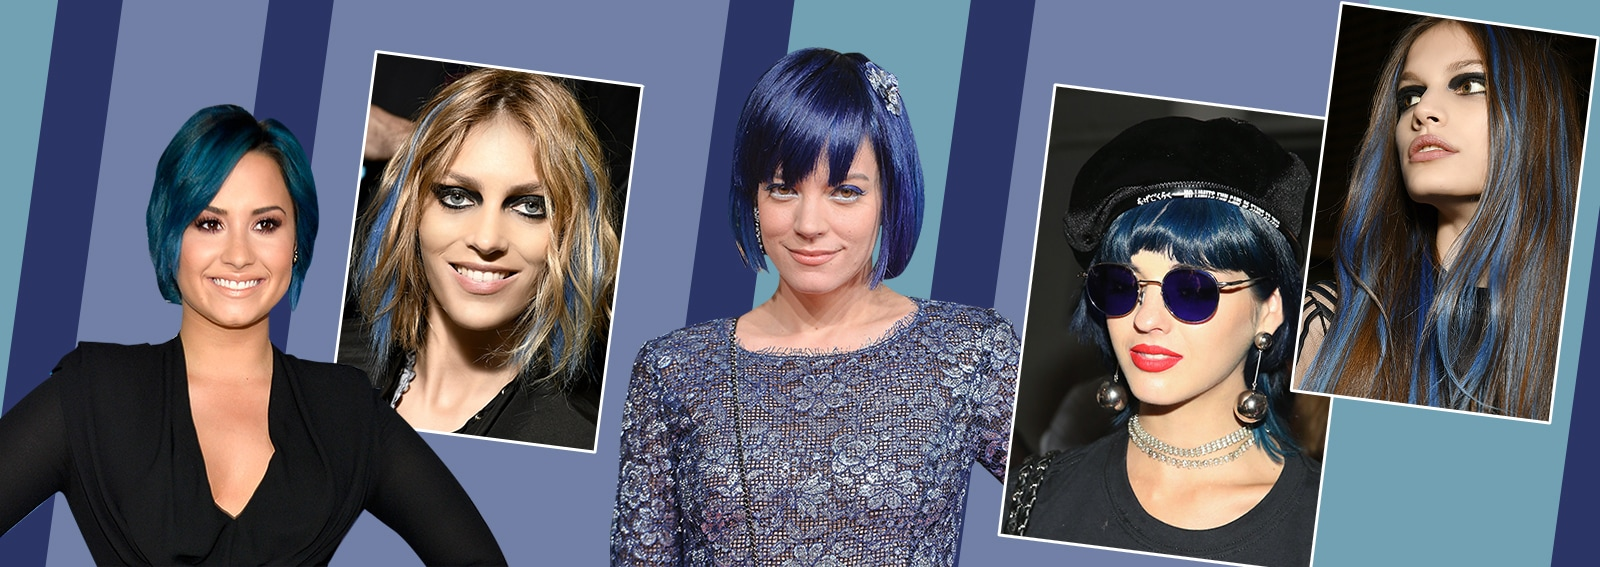 capelli blu tendenza autunno inverno 2017 2018 collage_desktop